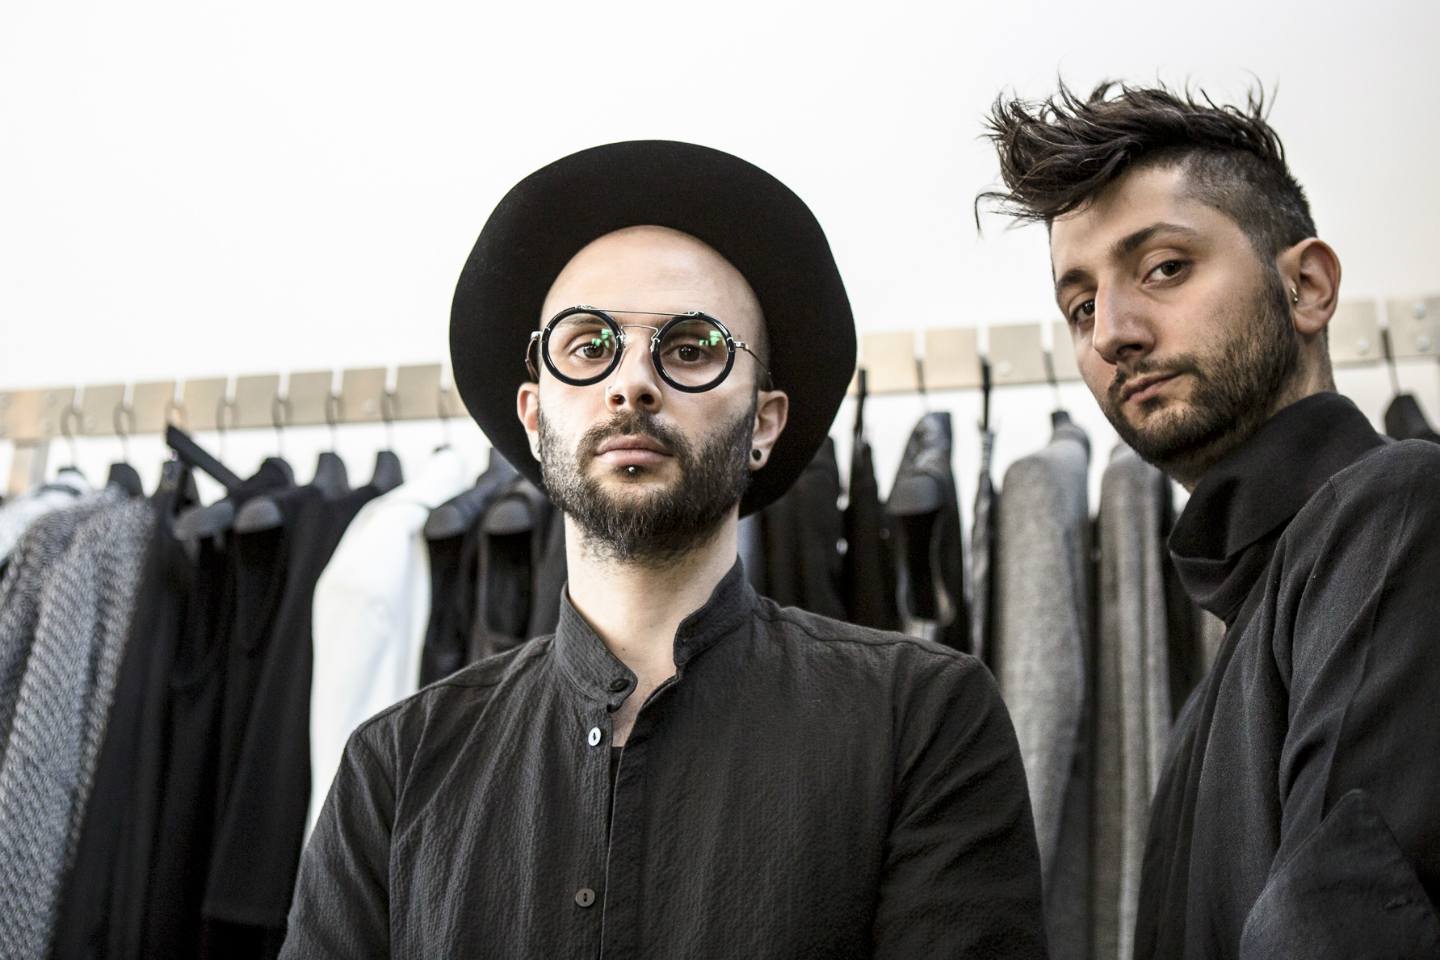 Two fashion designers in front of a rack of clothing